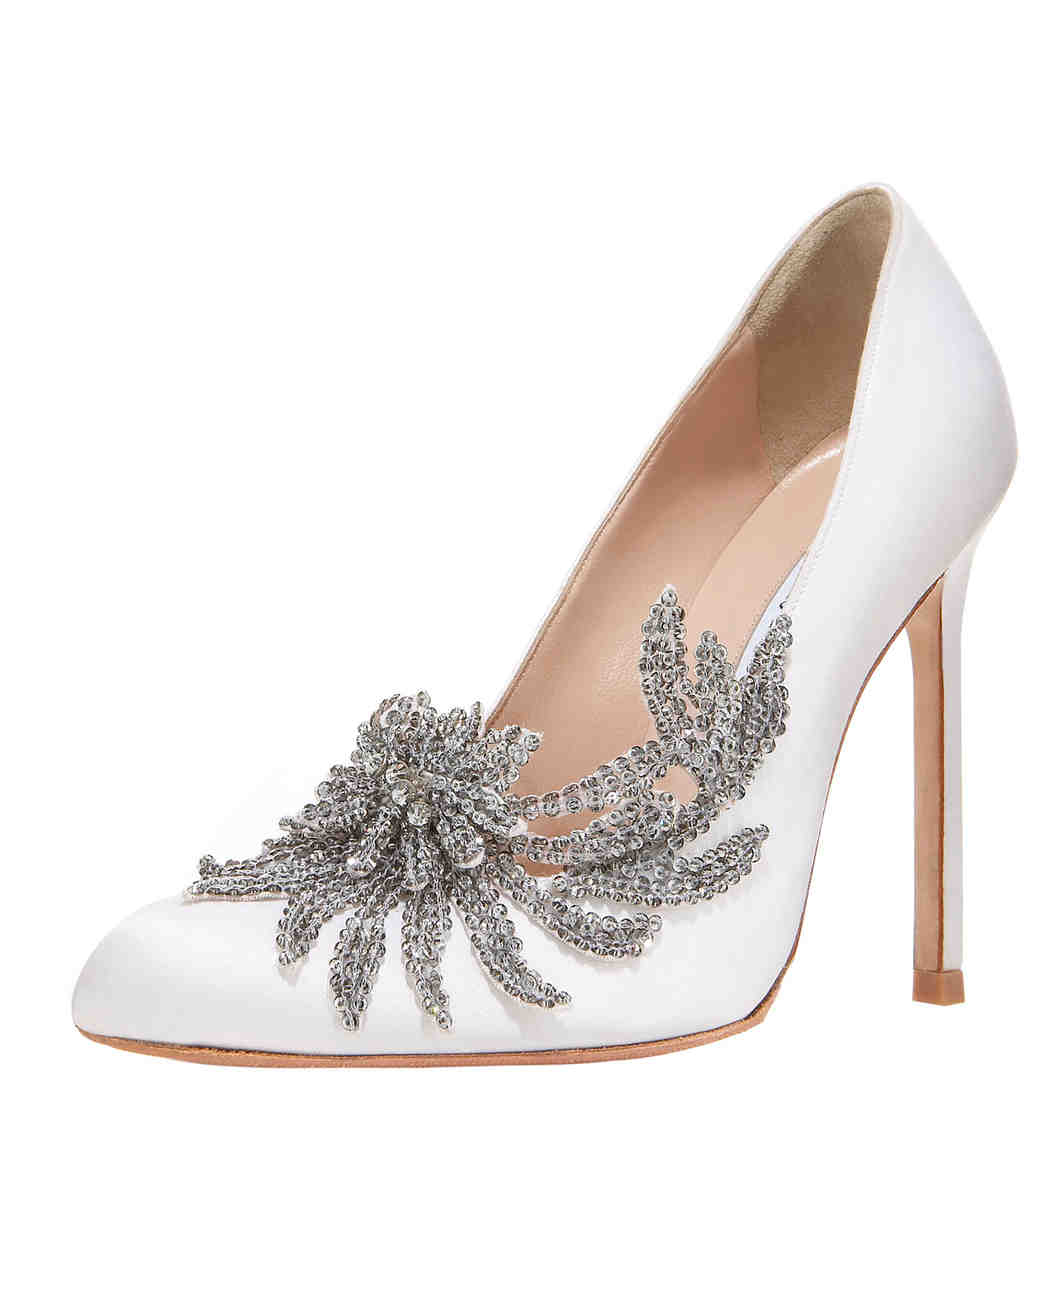 Look - Choo jimmy wedding shoes price video